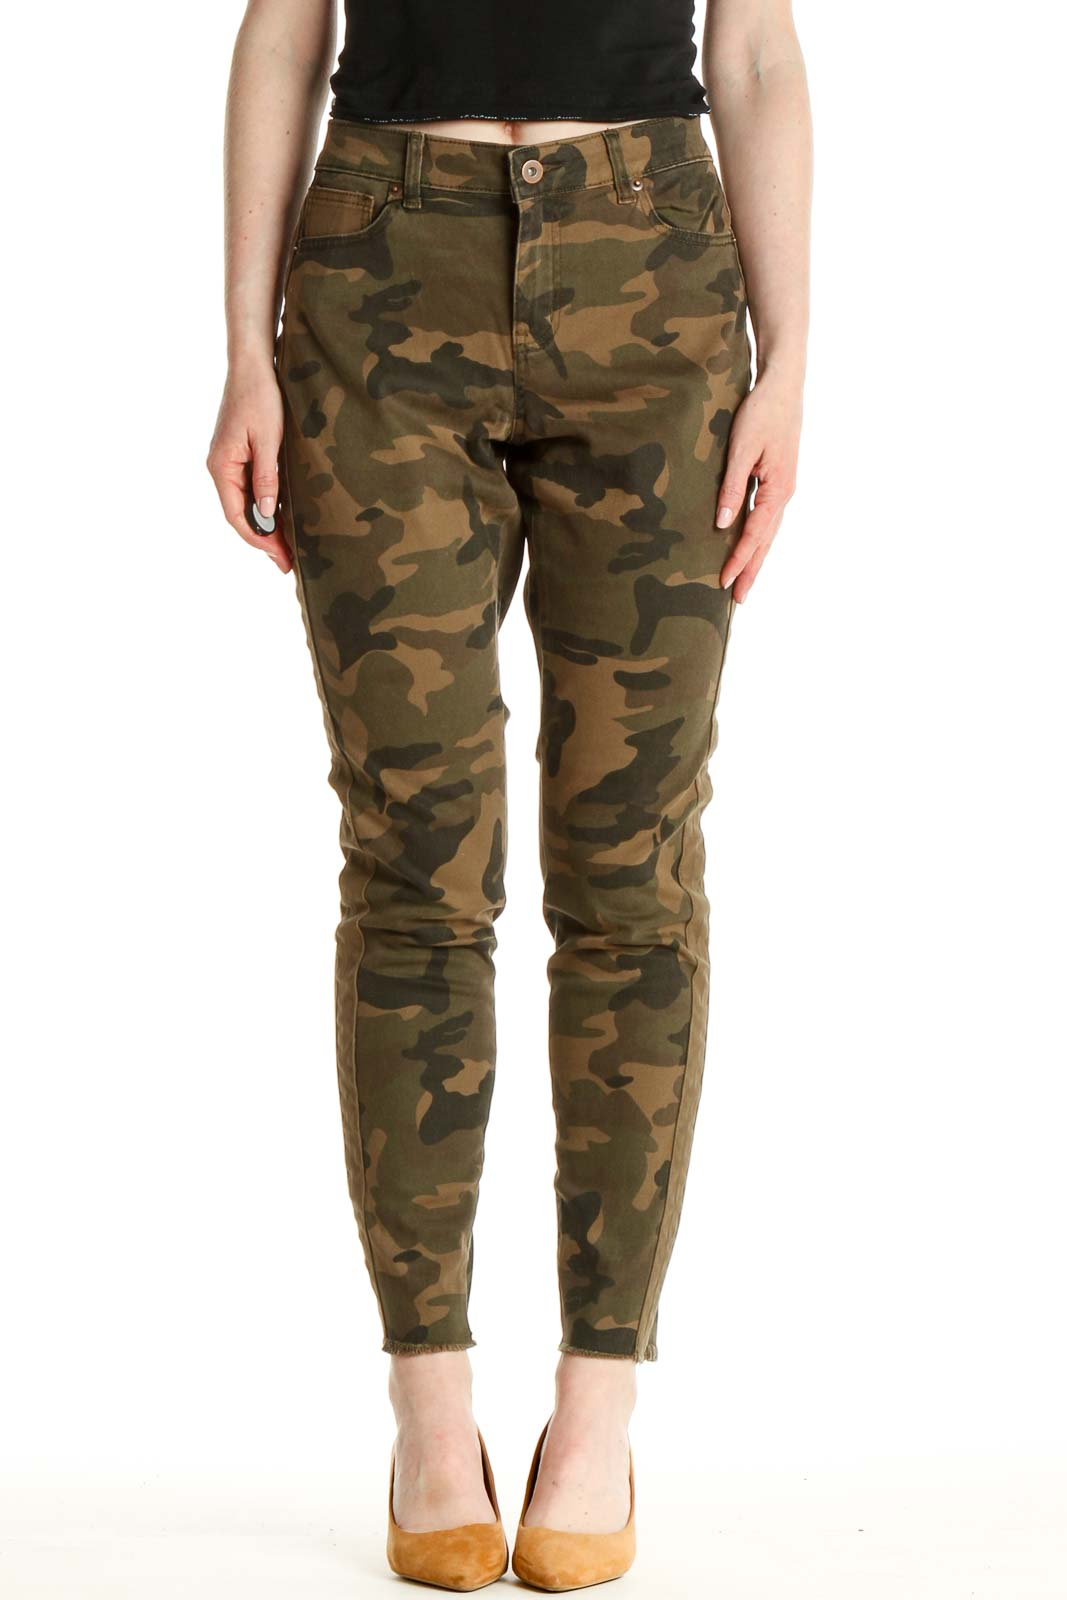 Brown Camouflage Print All Day Wear Cargos Pants Front